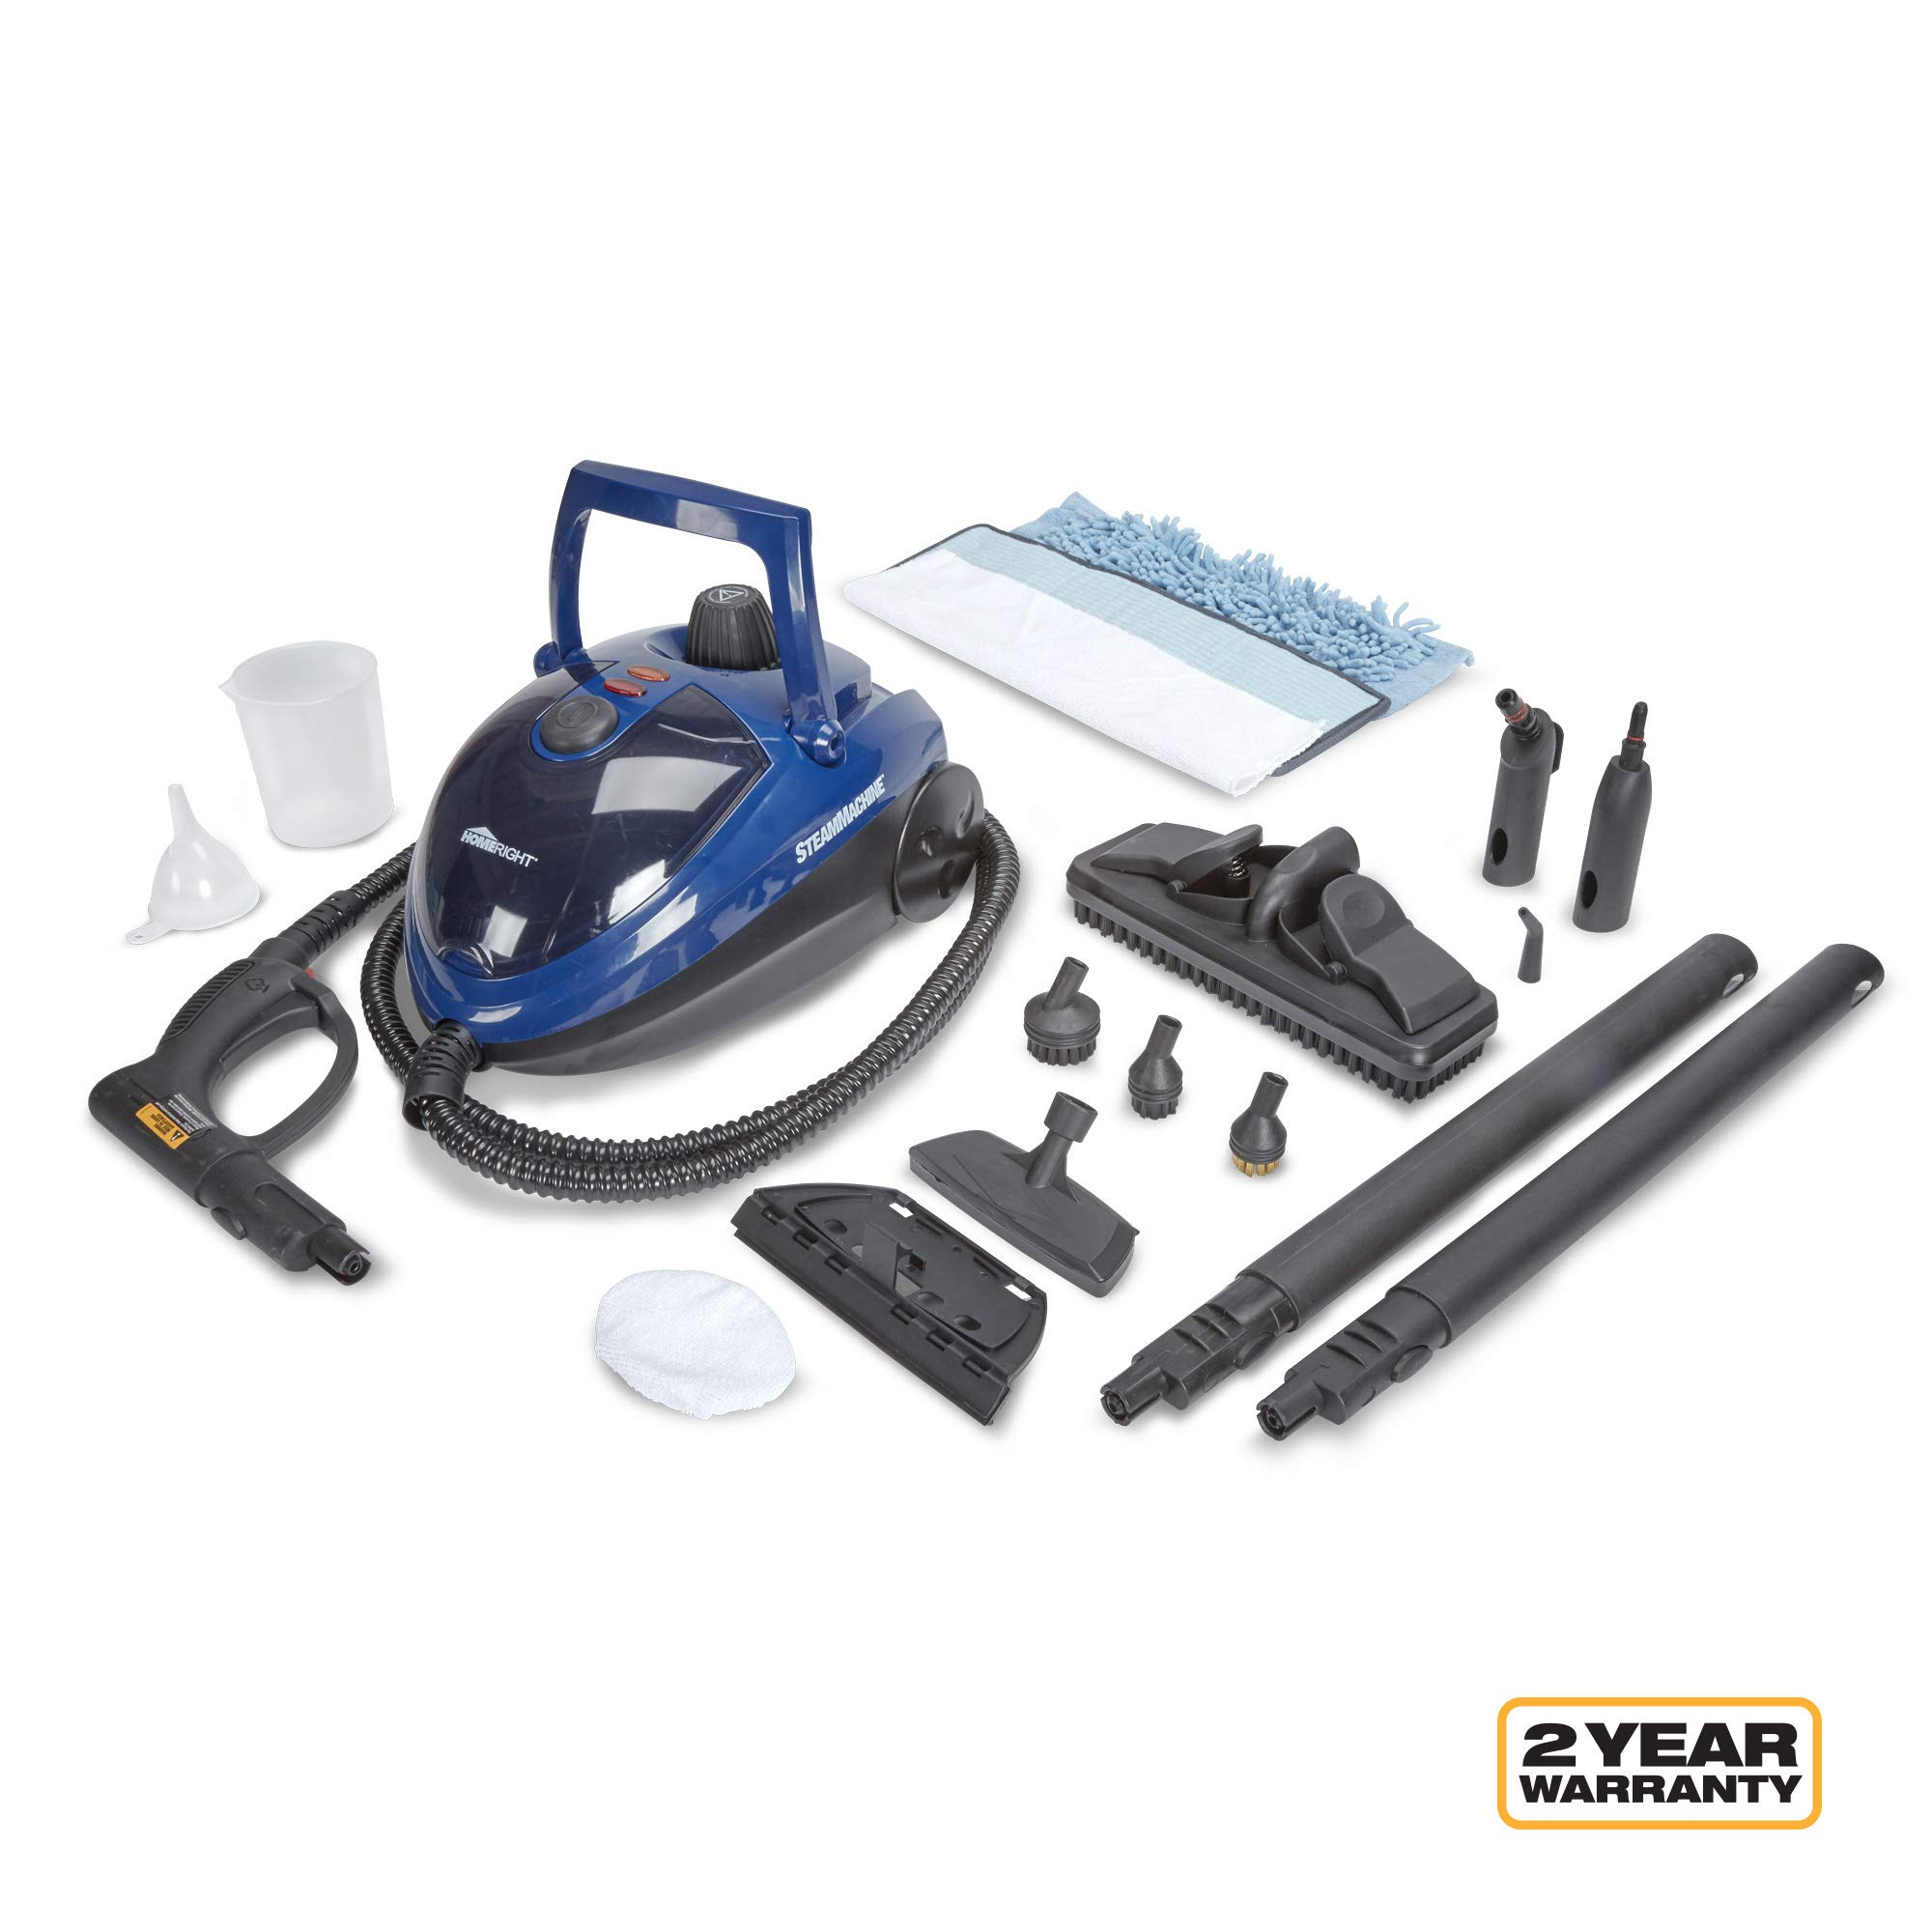 Wagner Spraytech C900053.M SteamMachine Multi-Purpose Home Steamer Steam Cleaner for Cleaning Counters, Floors, Windows, Appliances and Bathrooms, Model 53, Blue